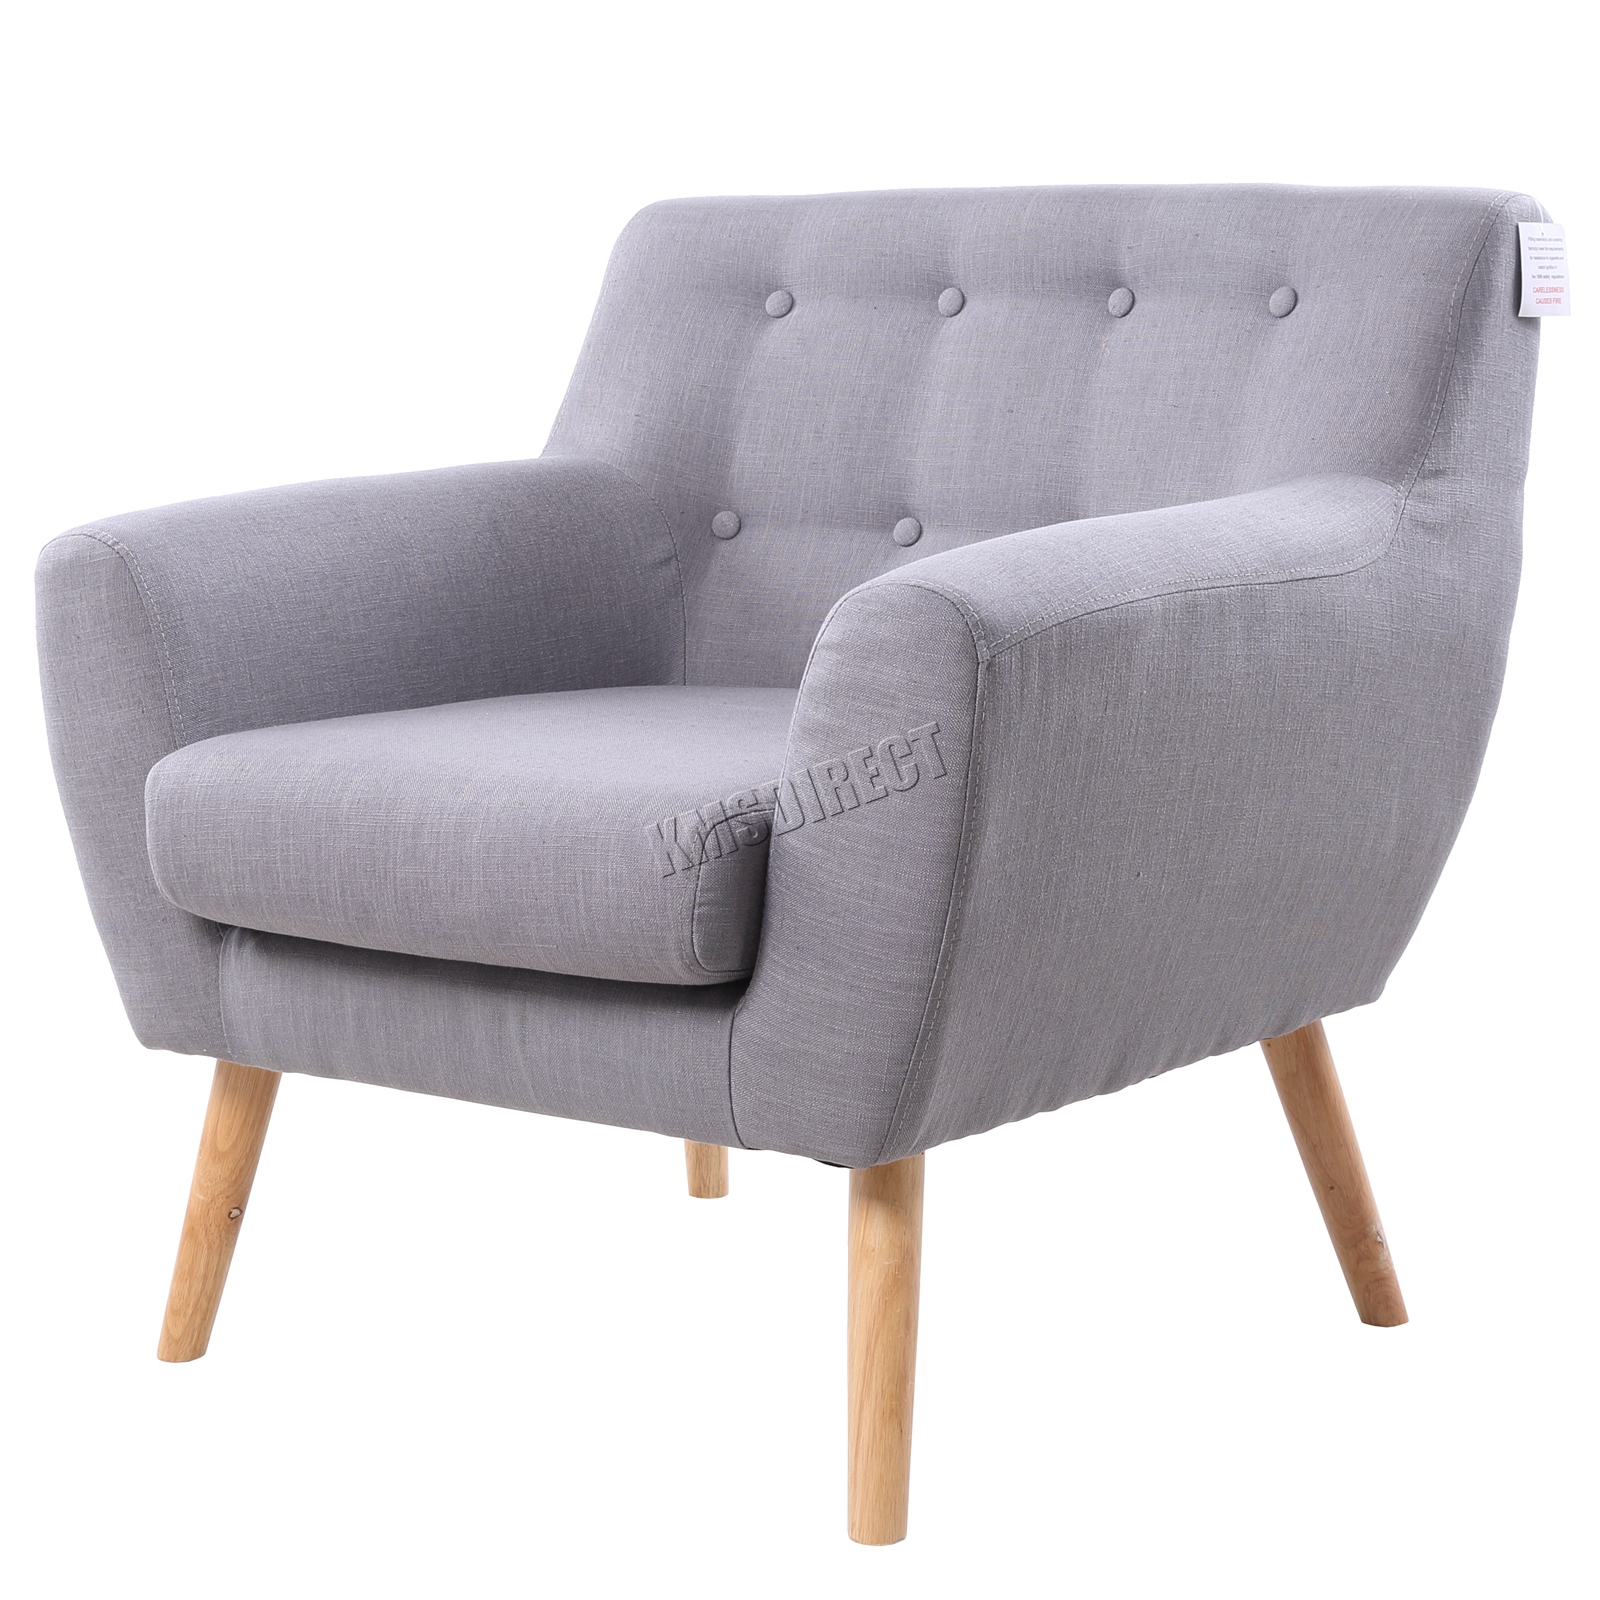 Foxhunter Linen Fabric 1 Single Seat Sofa Tub Arm Chair